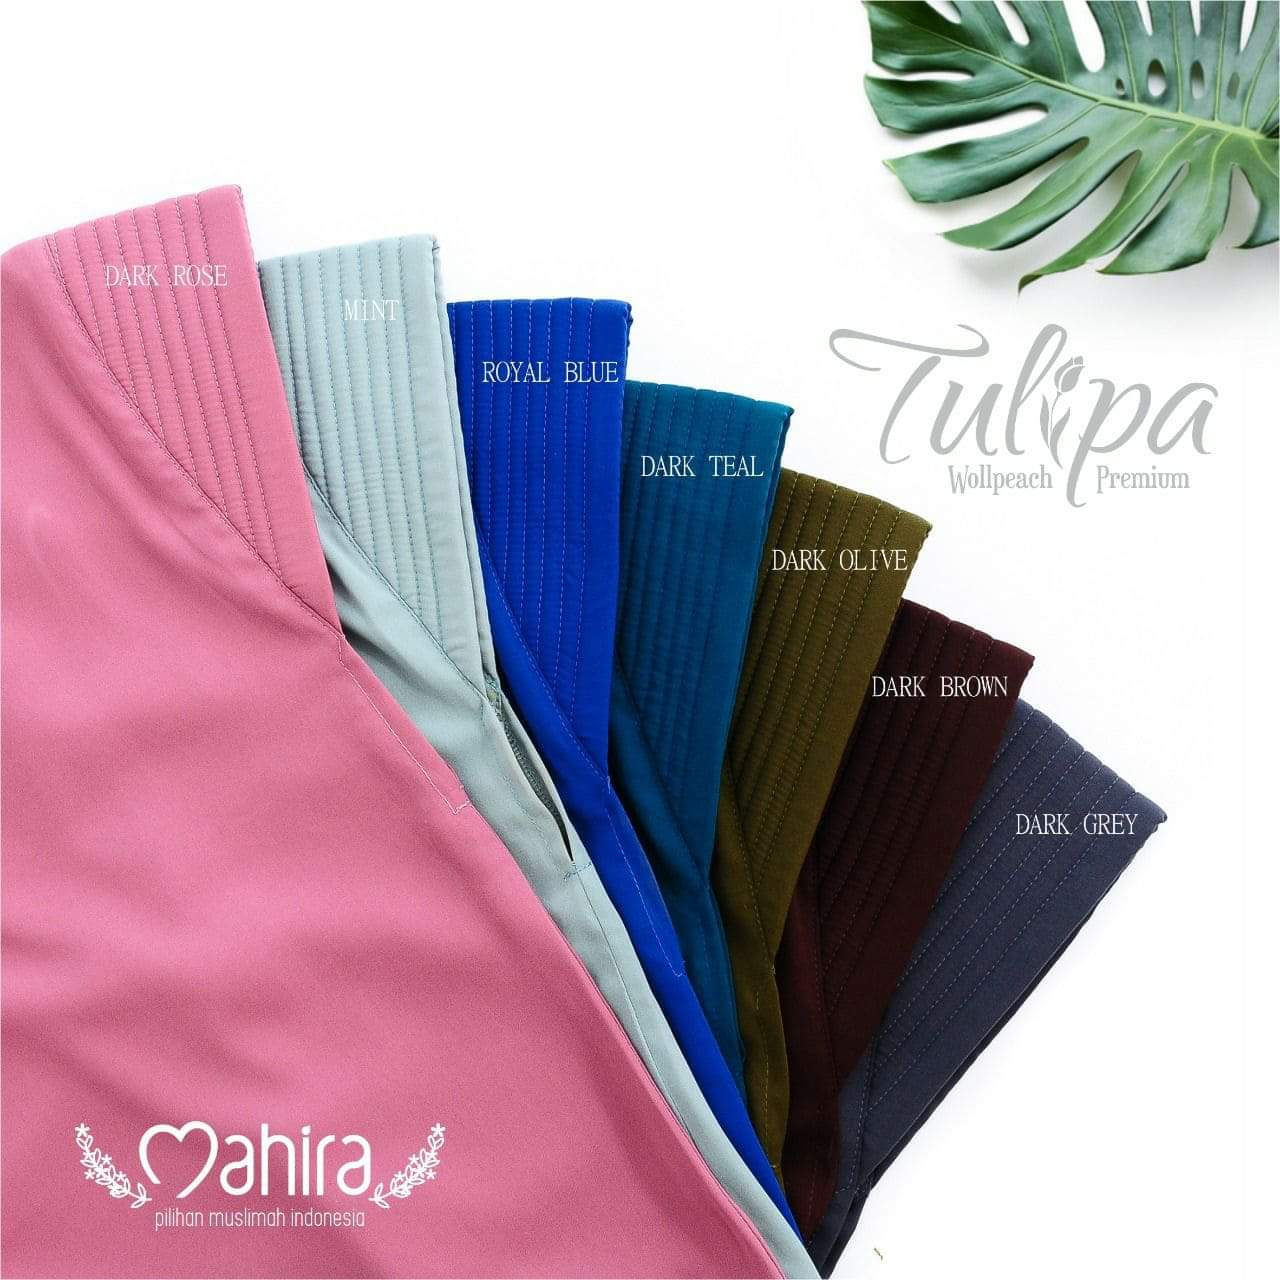 Mahira Tulipa Wollpeach Premium Royal Blue, Dark Teal, Dark Olive, Dark Brown, Dark Grey